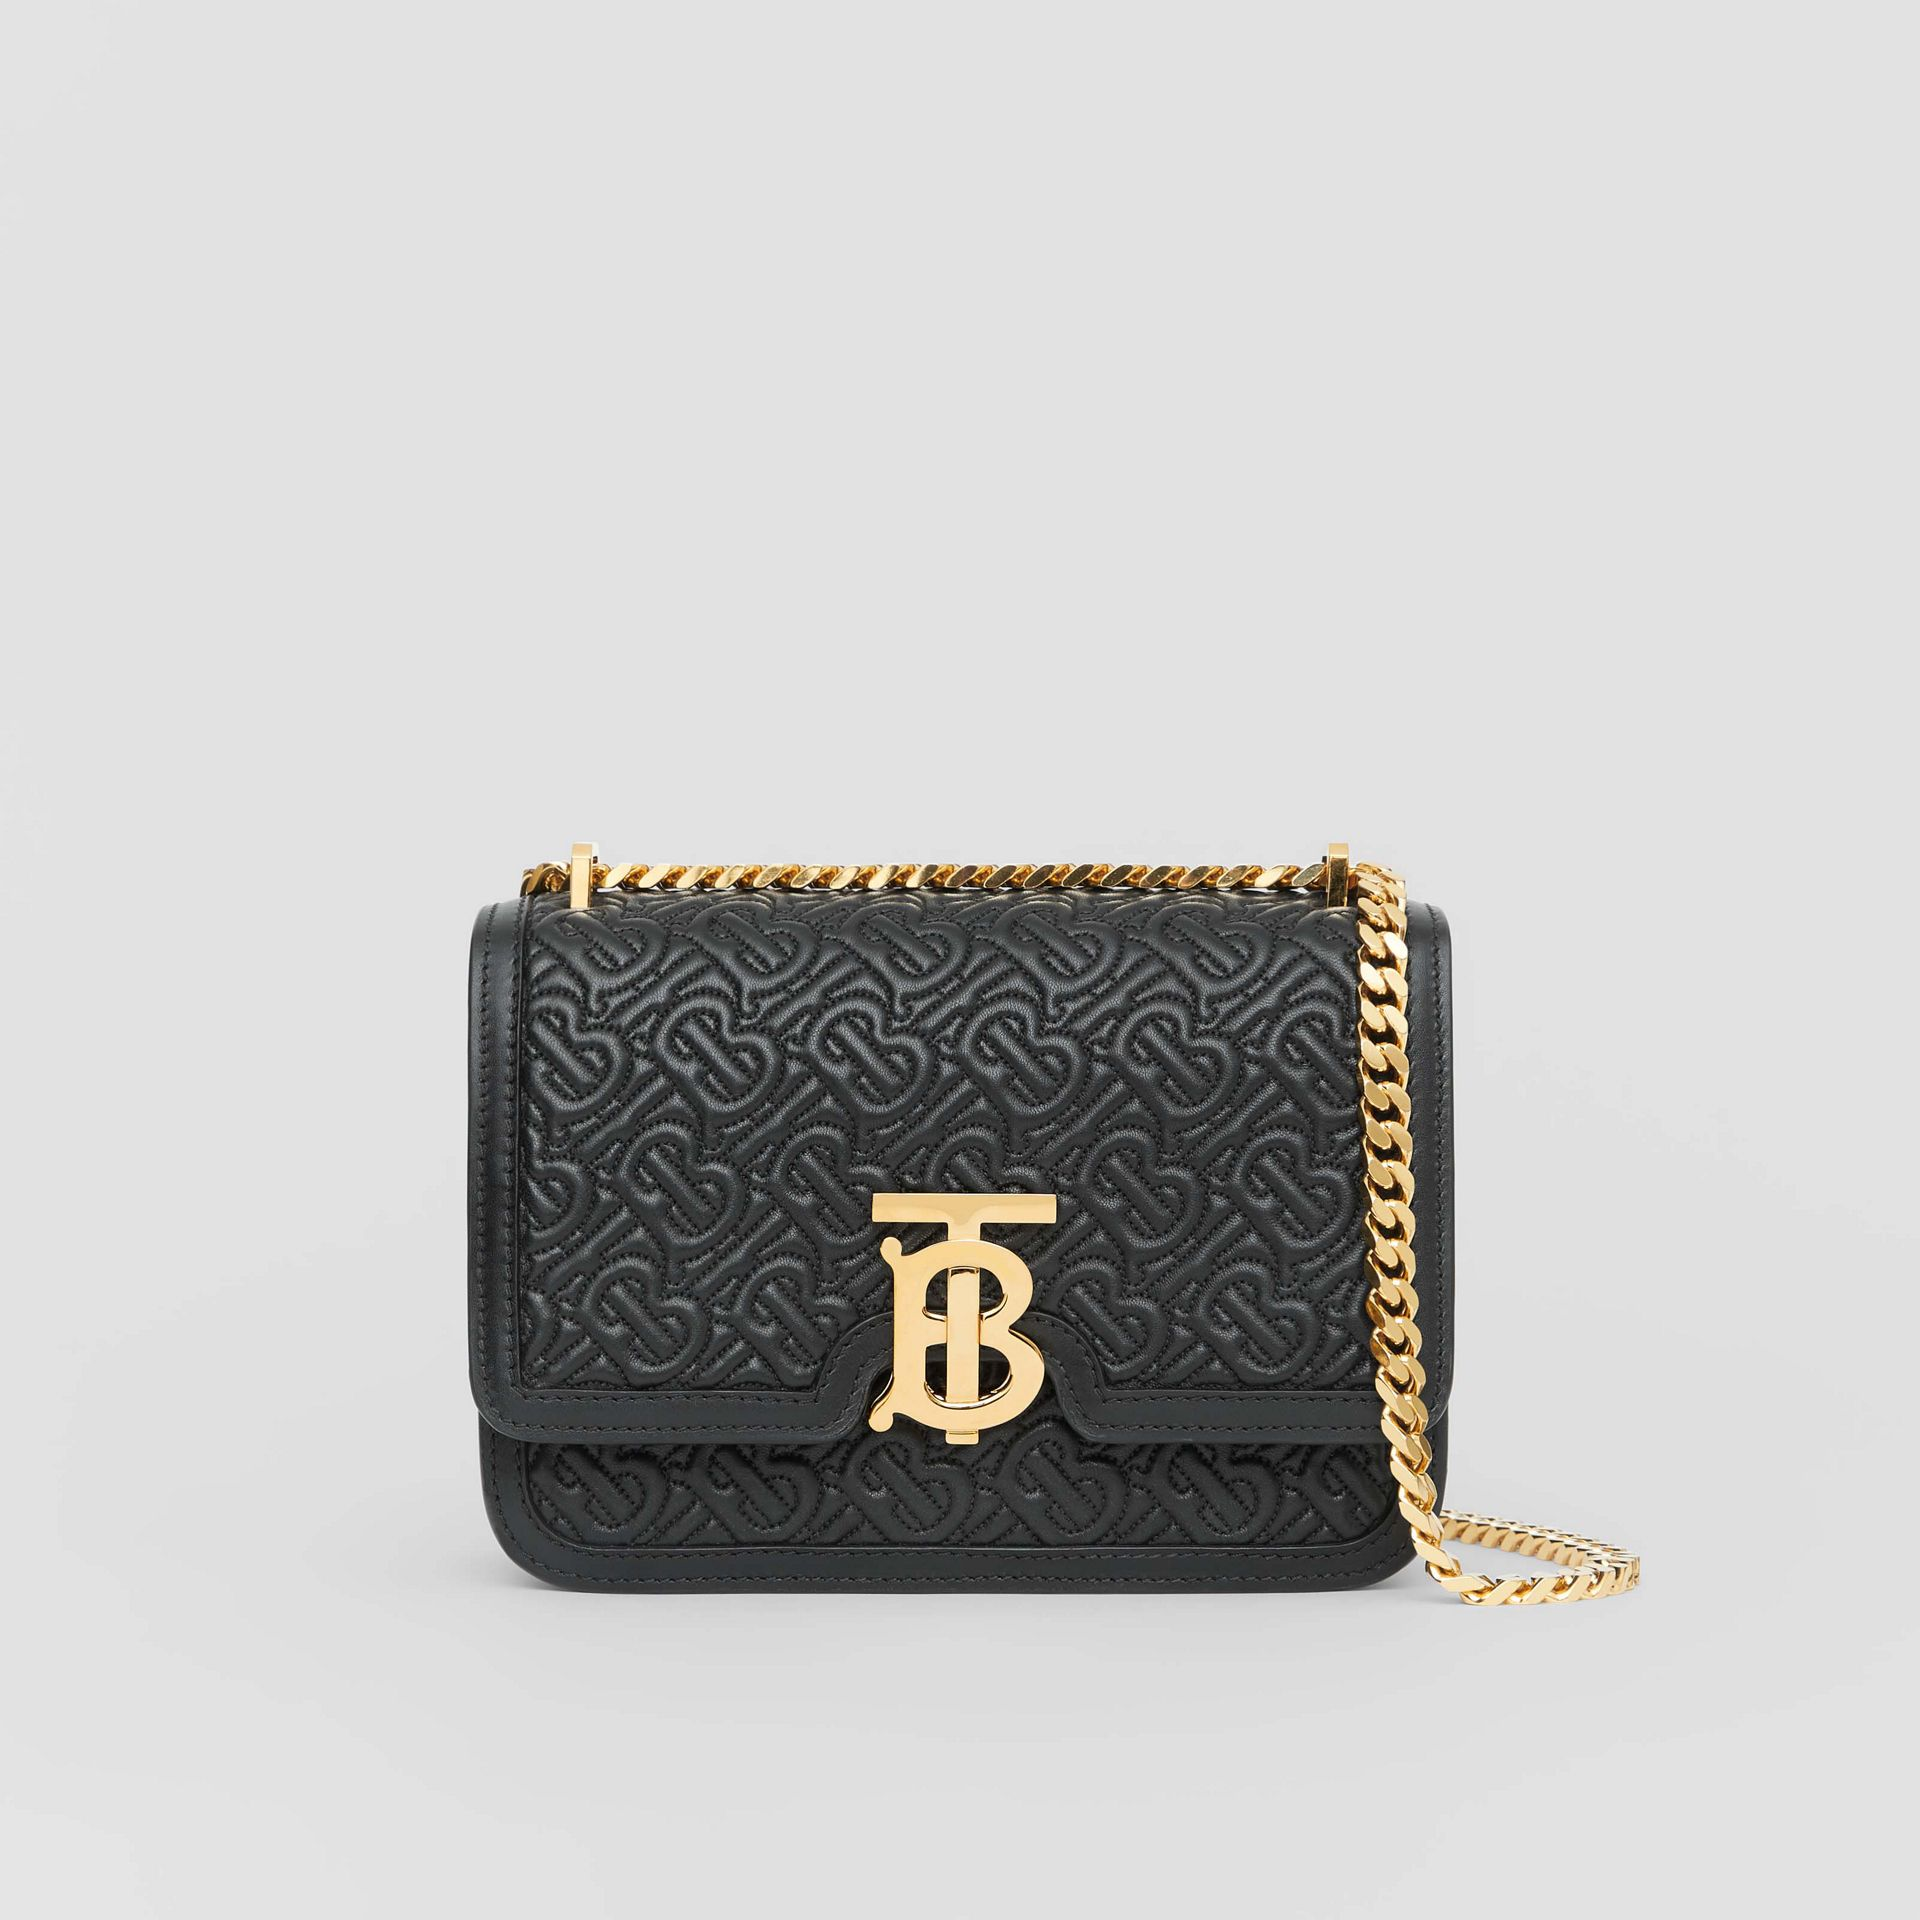 Small Quilted Monogram Lambskin TB Bag in Black - Women | Burberry United States - gallery image 0